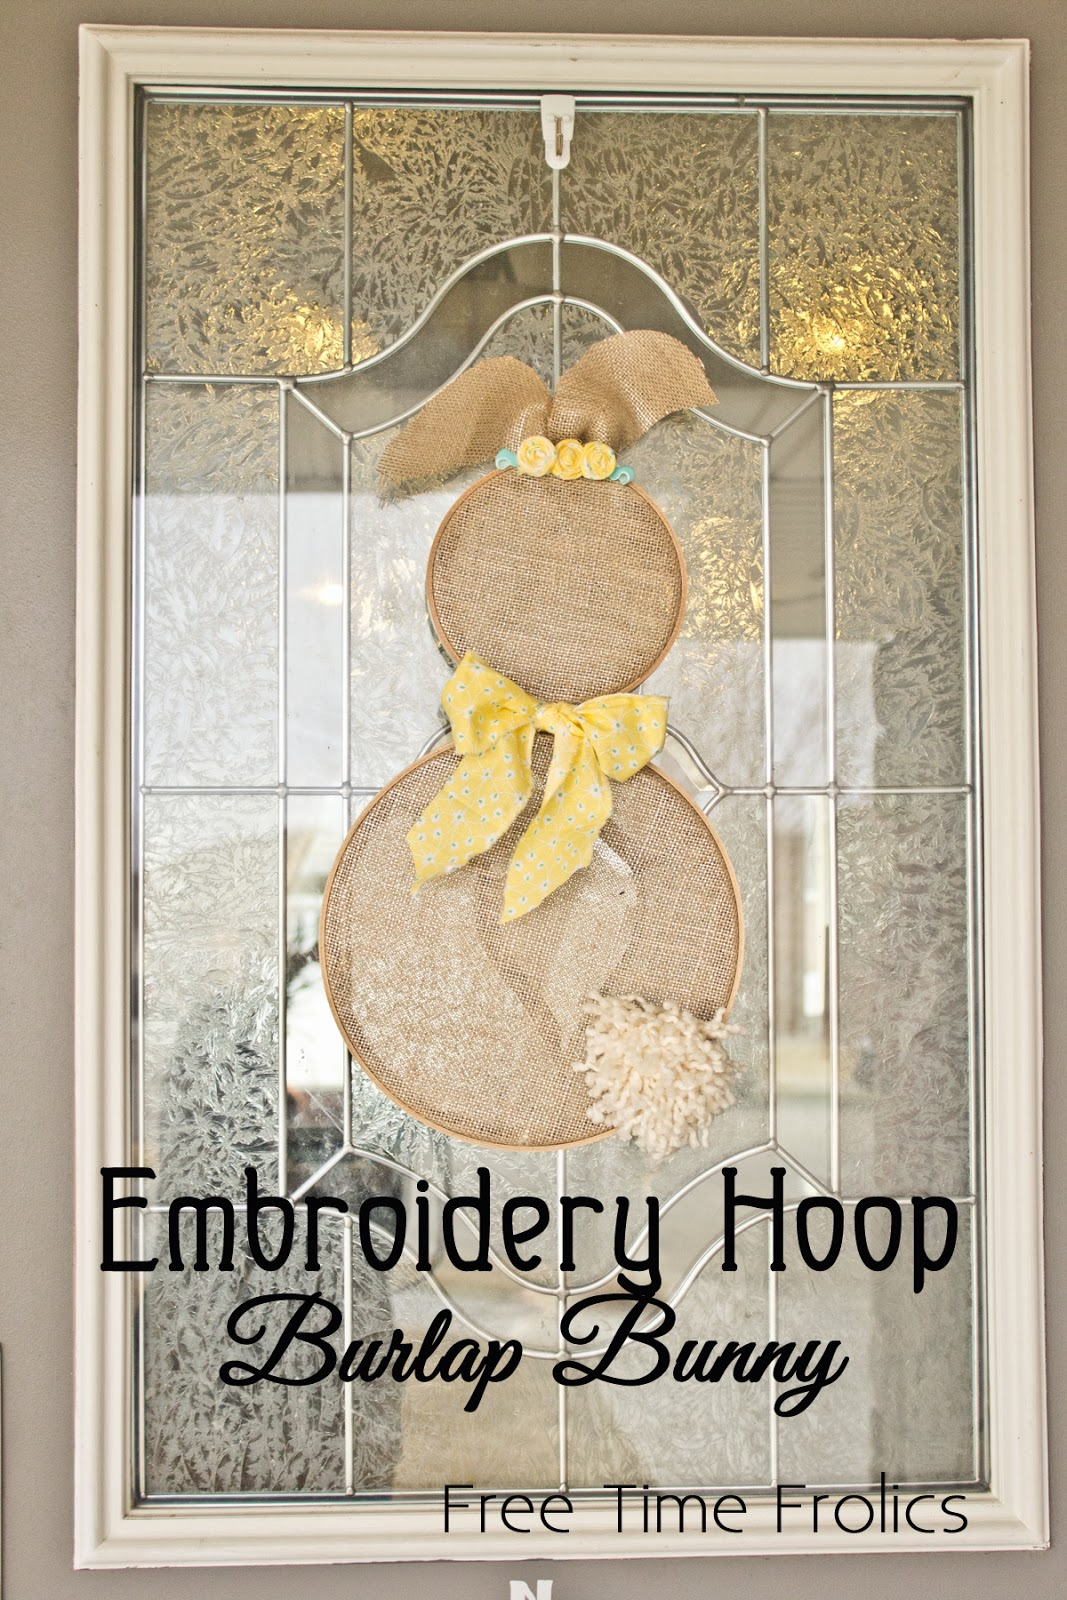 Embroidery Hoop Burlap Bunny Door decor via www.freetimefrolics.com #bunny #decor #easter